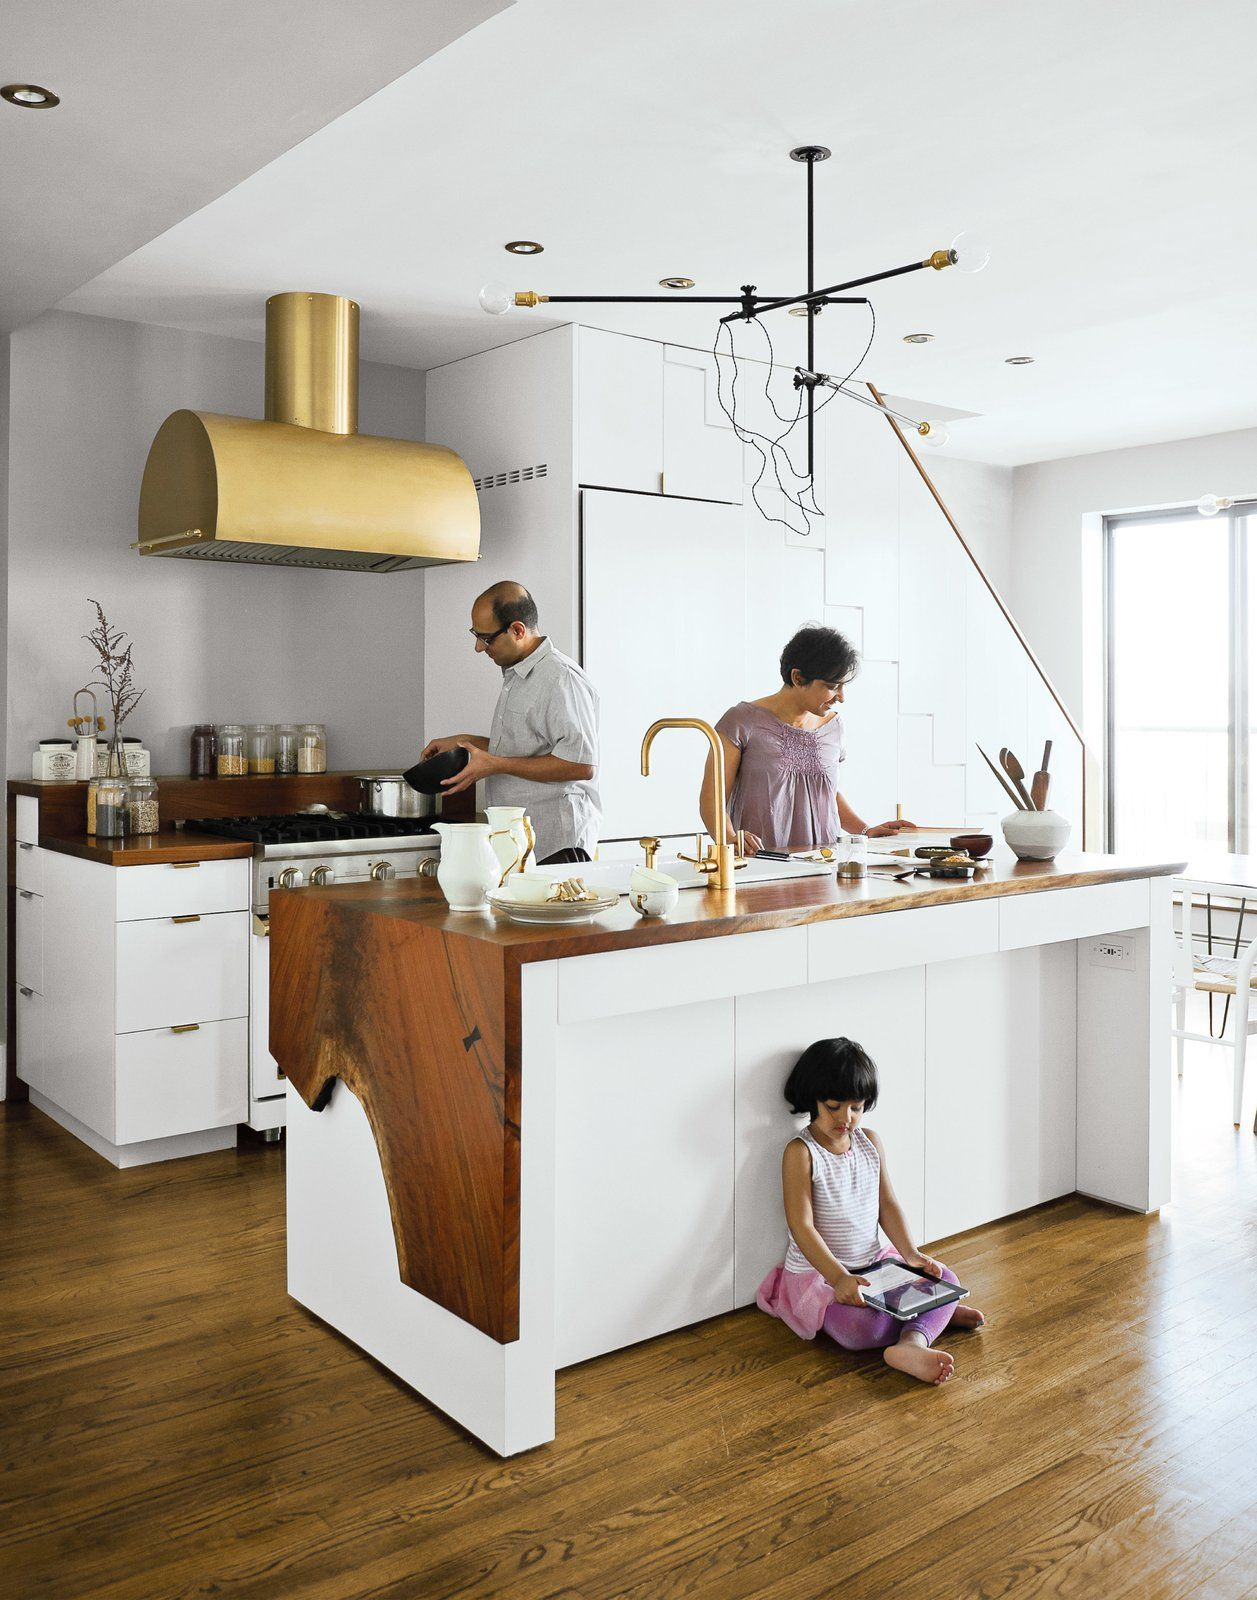 Waterfall Island Kitchen | Keep Up With The Waterfall Countertop Trend Looks That Inspire